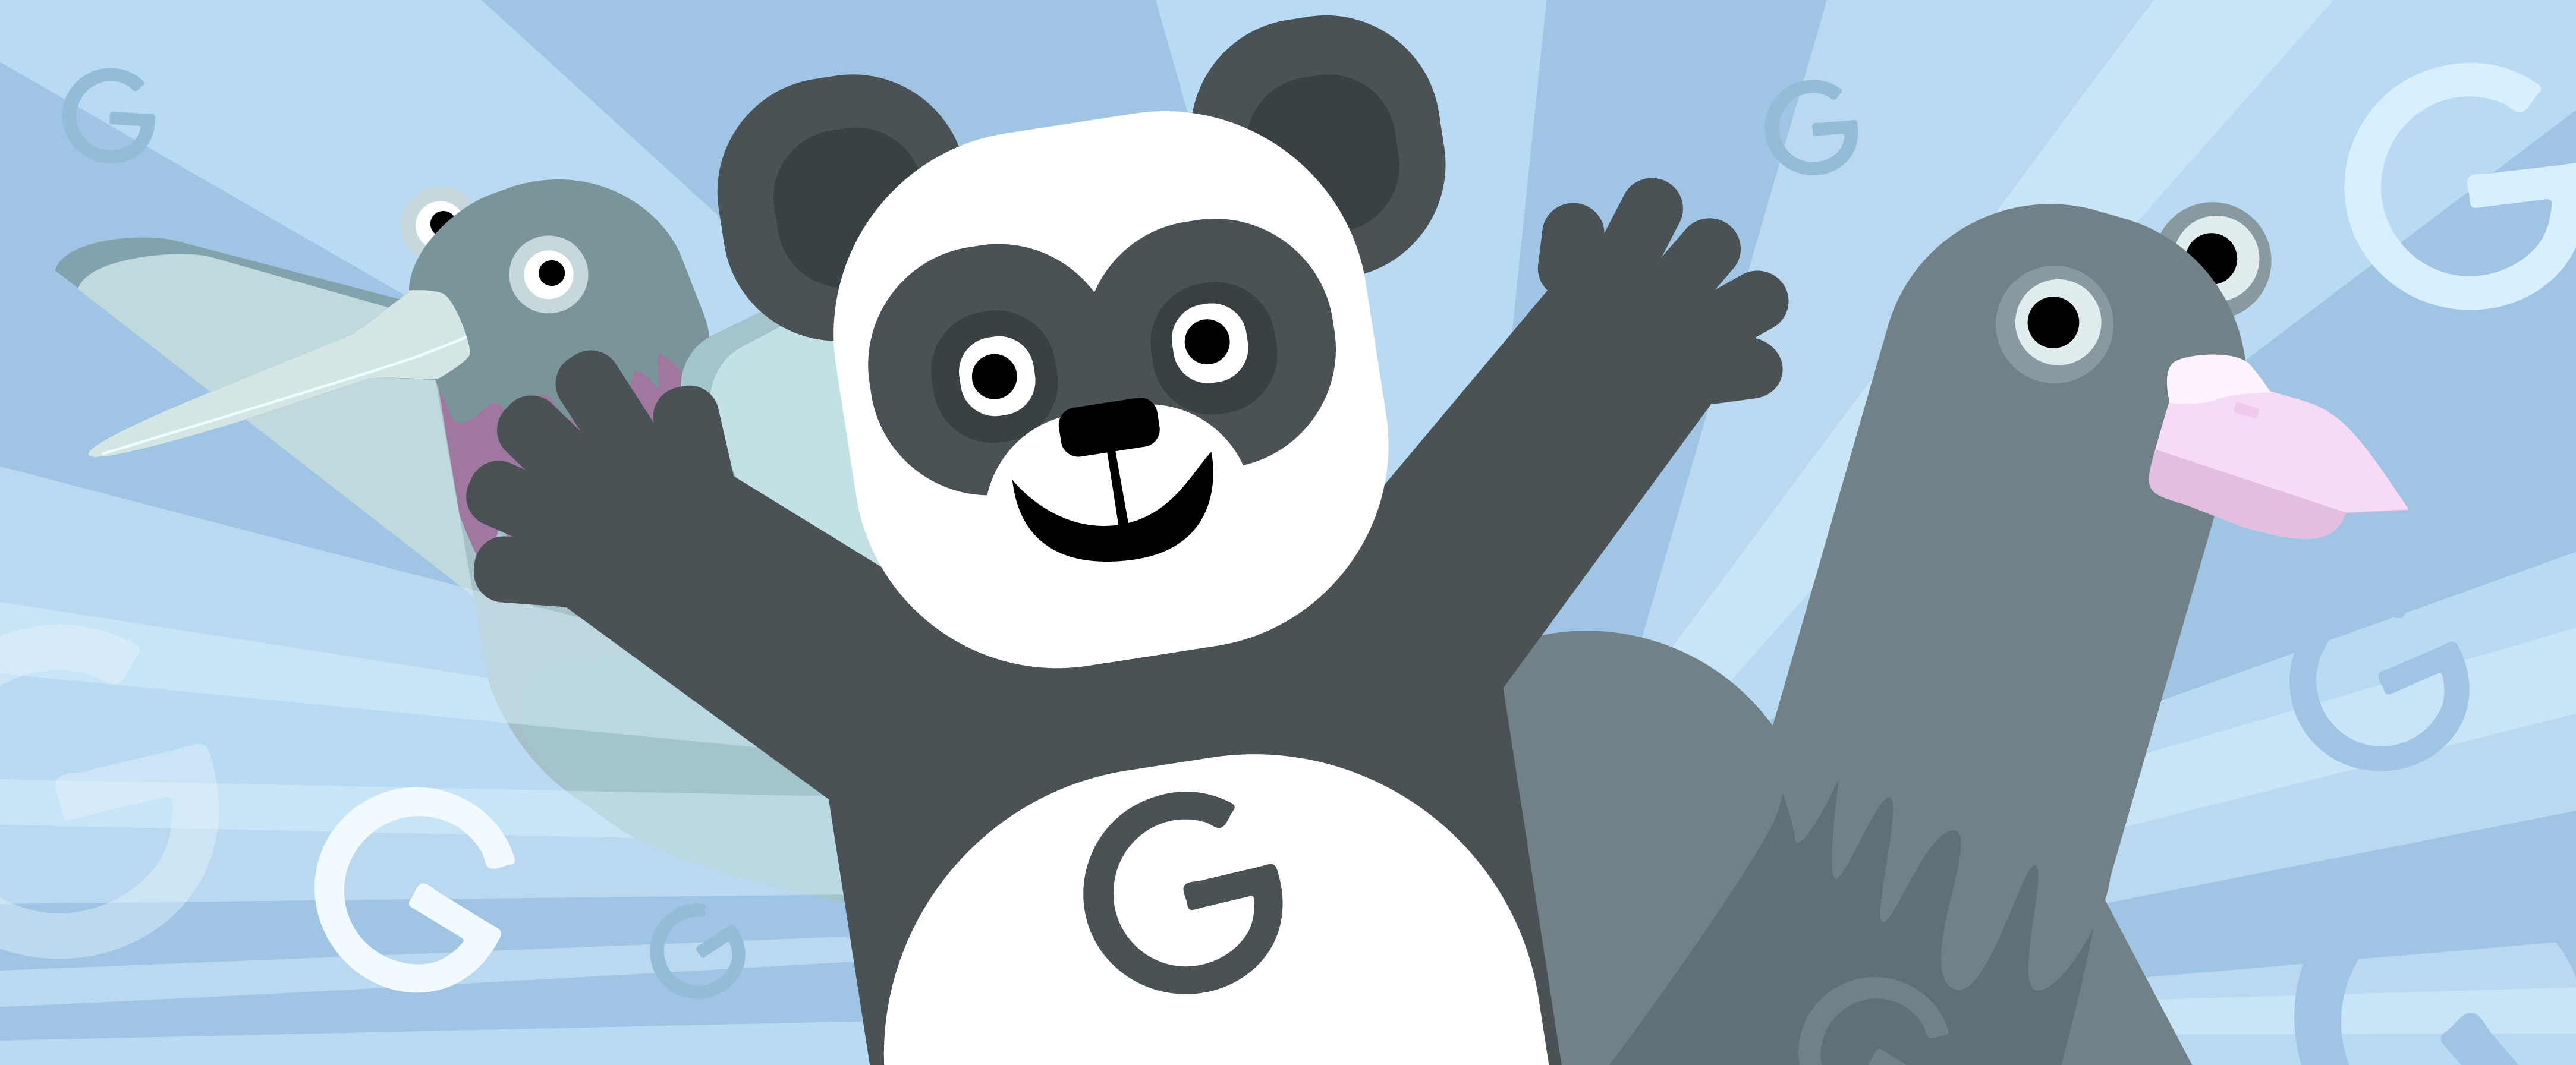 Panda? Penguin? Hummingbird? A Guide To Feared Google's Zoo